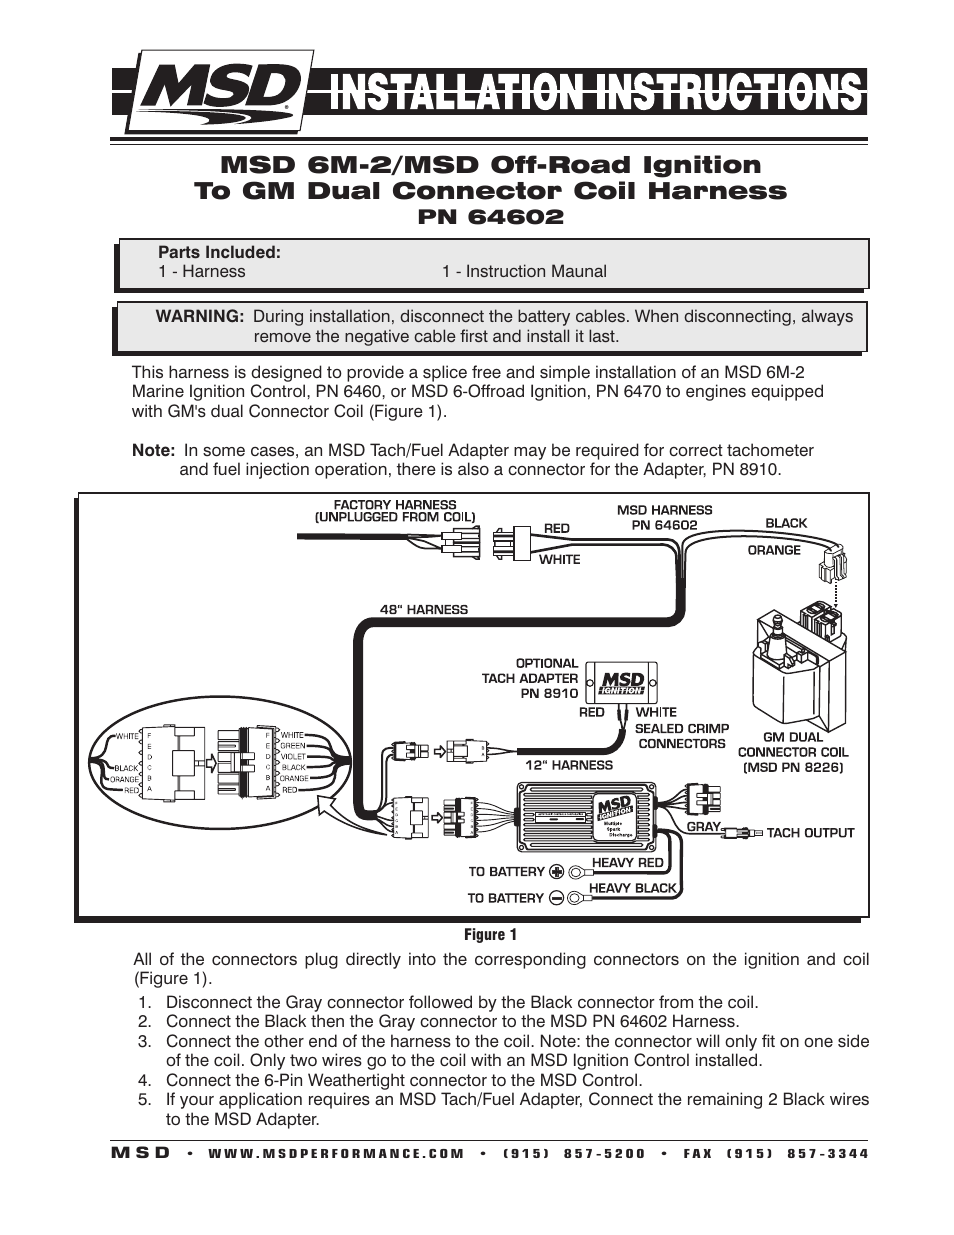 medium resolution of msd 64602 6m 2 to gm dual connector harness installation user manual 2 pages